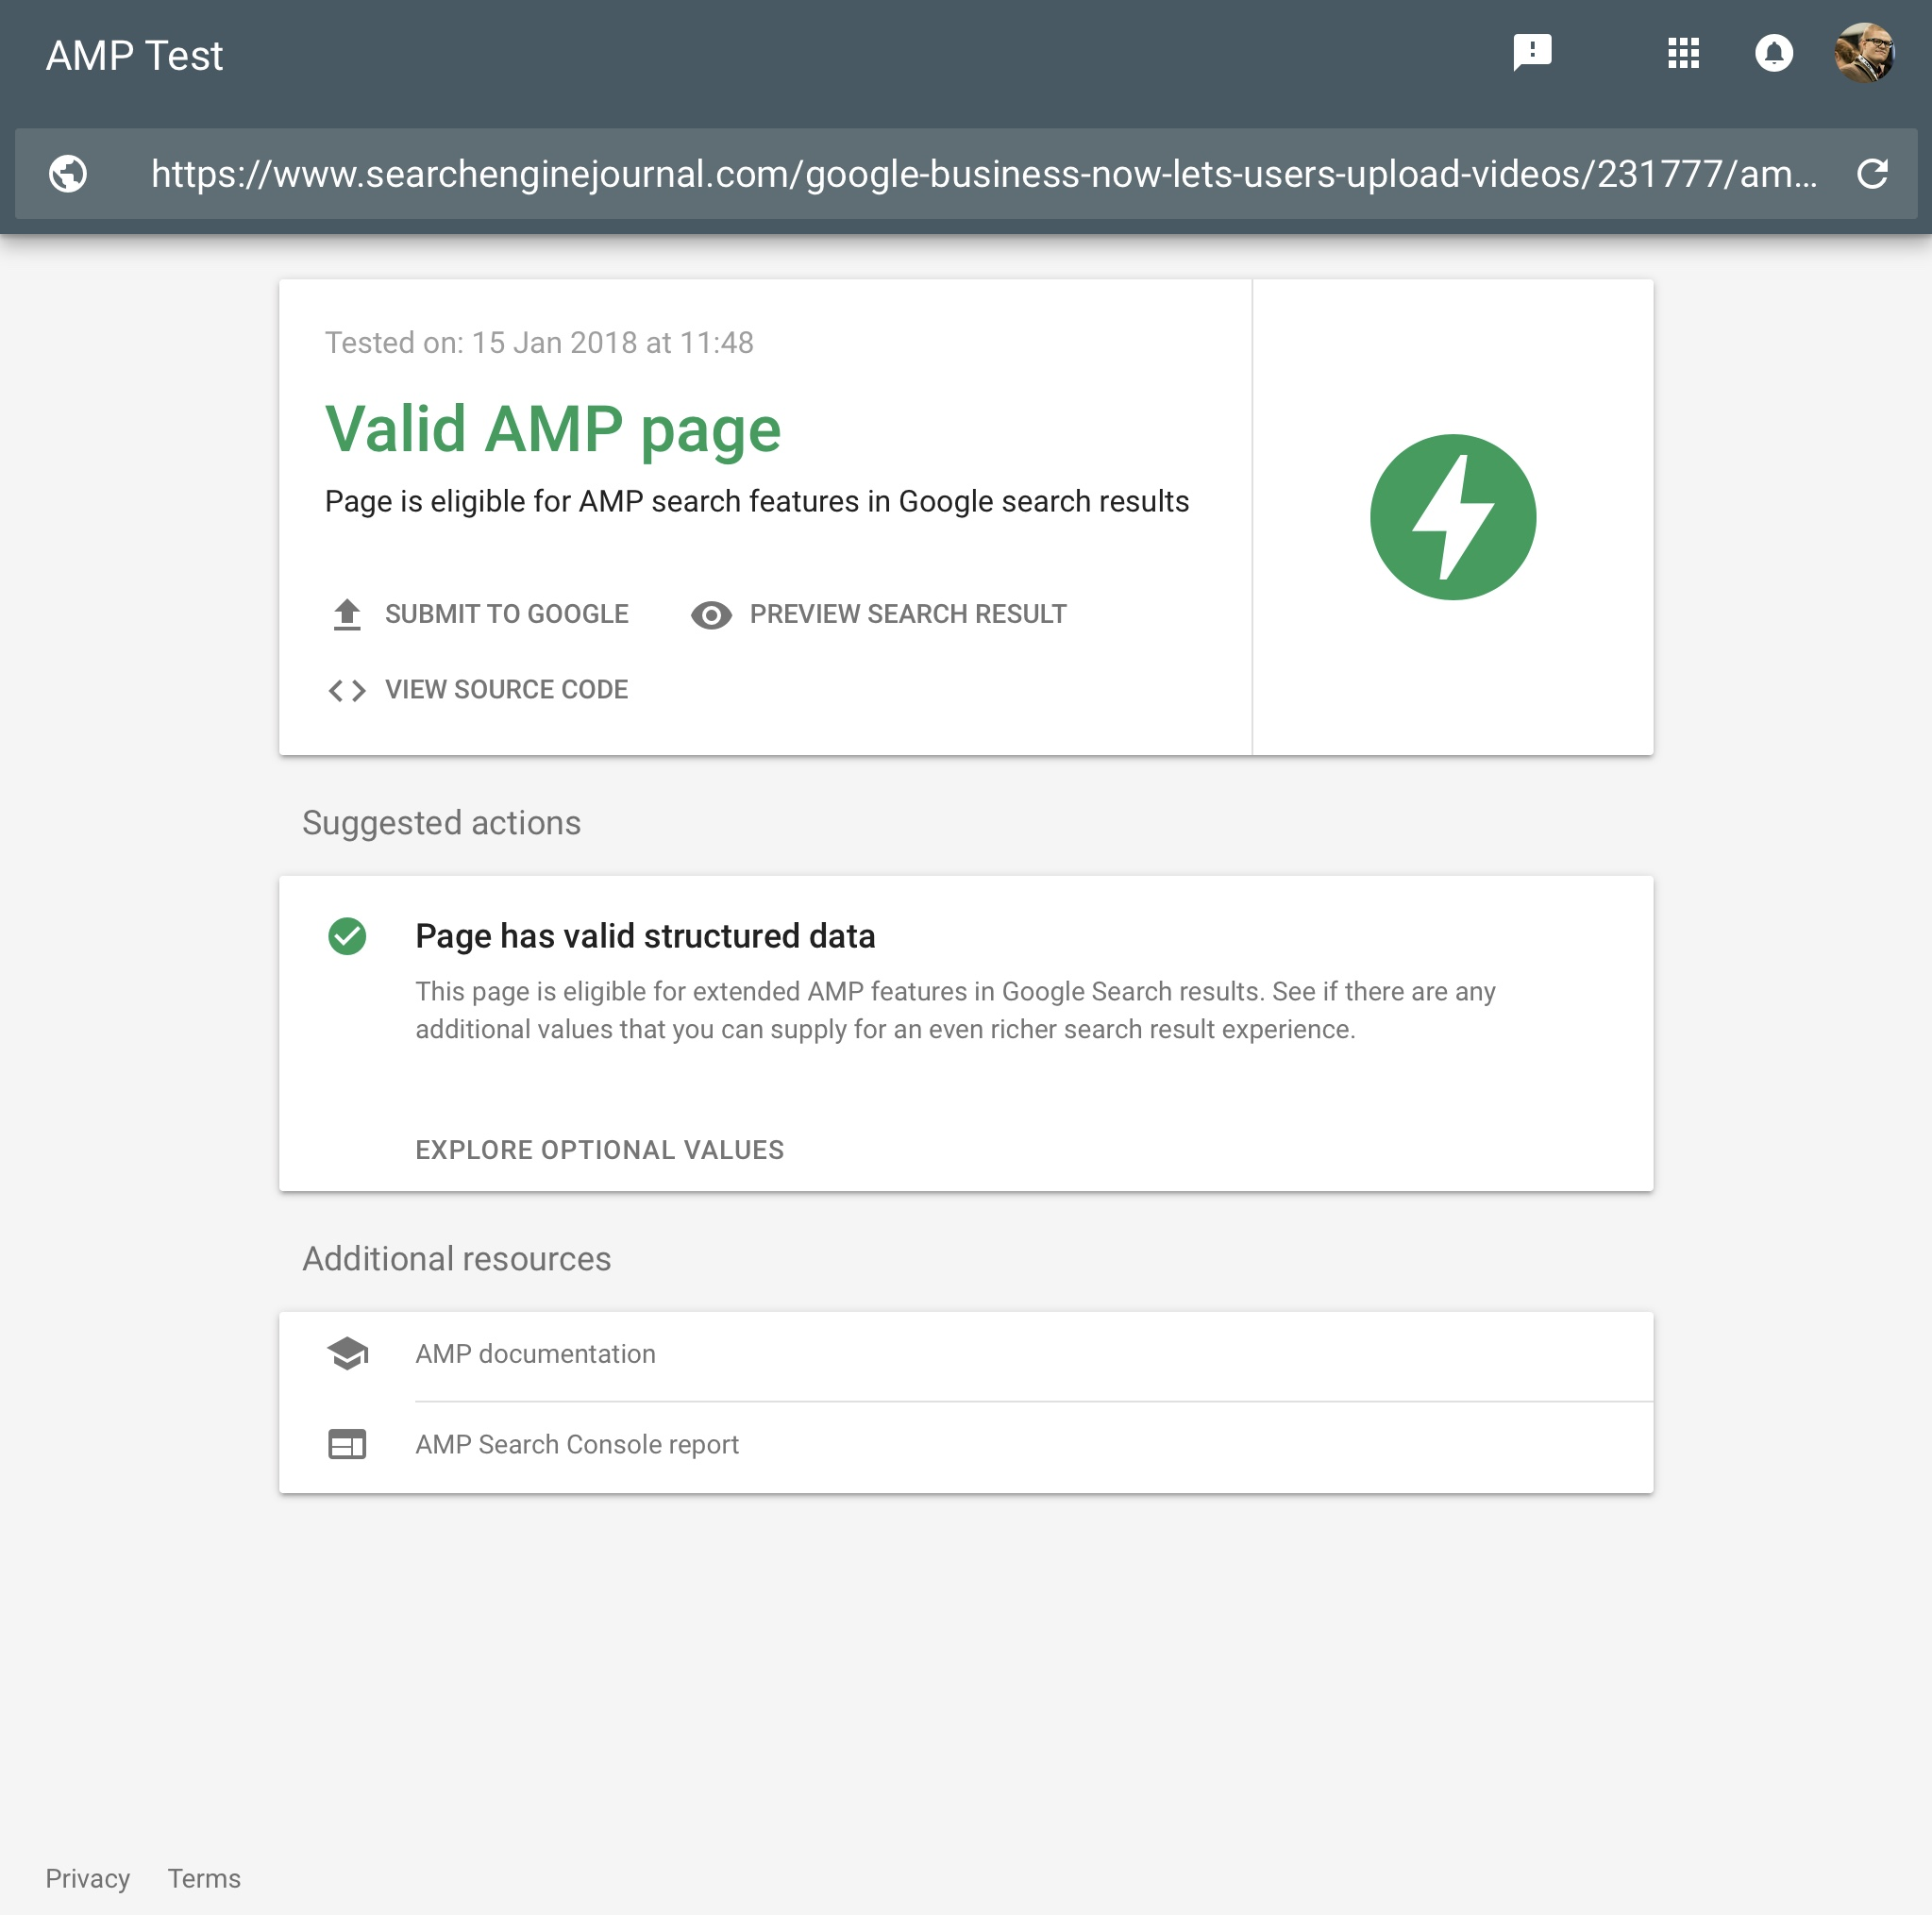 Google Adds AMP Testing Tool to Search Results